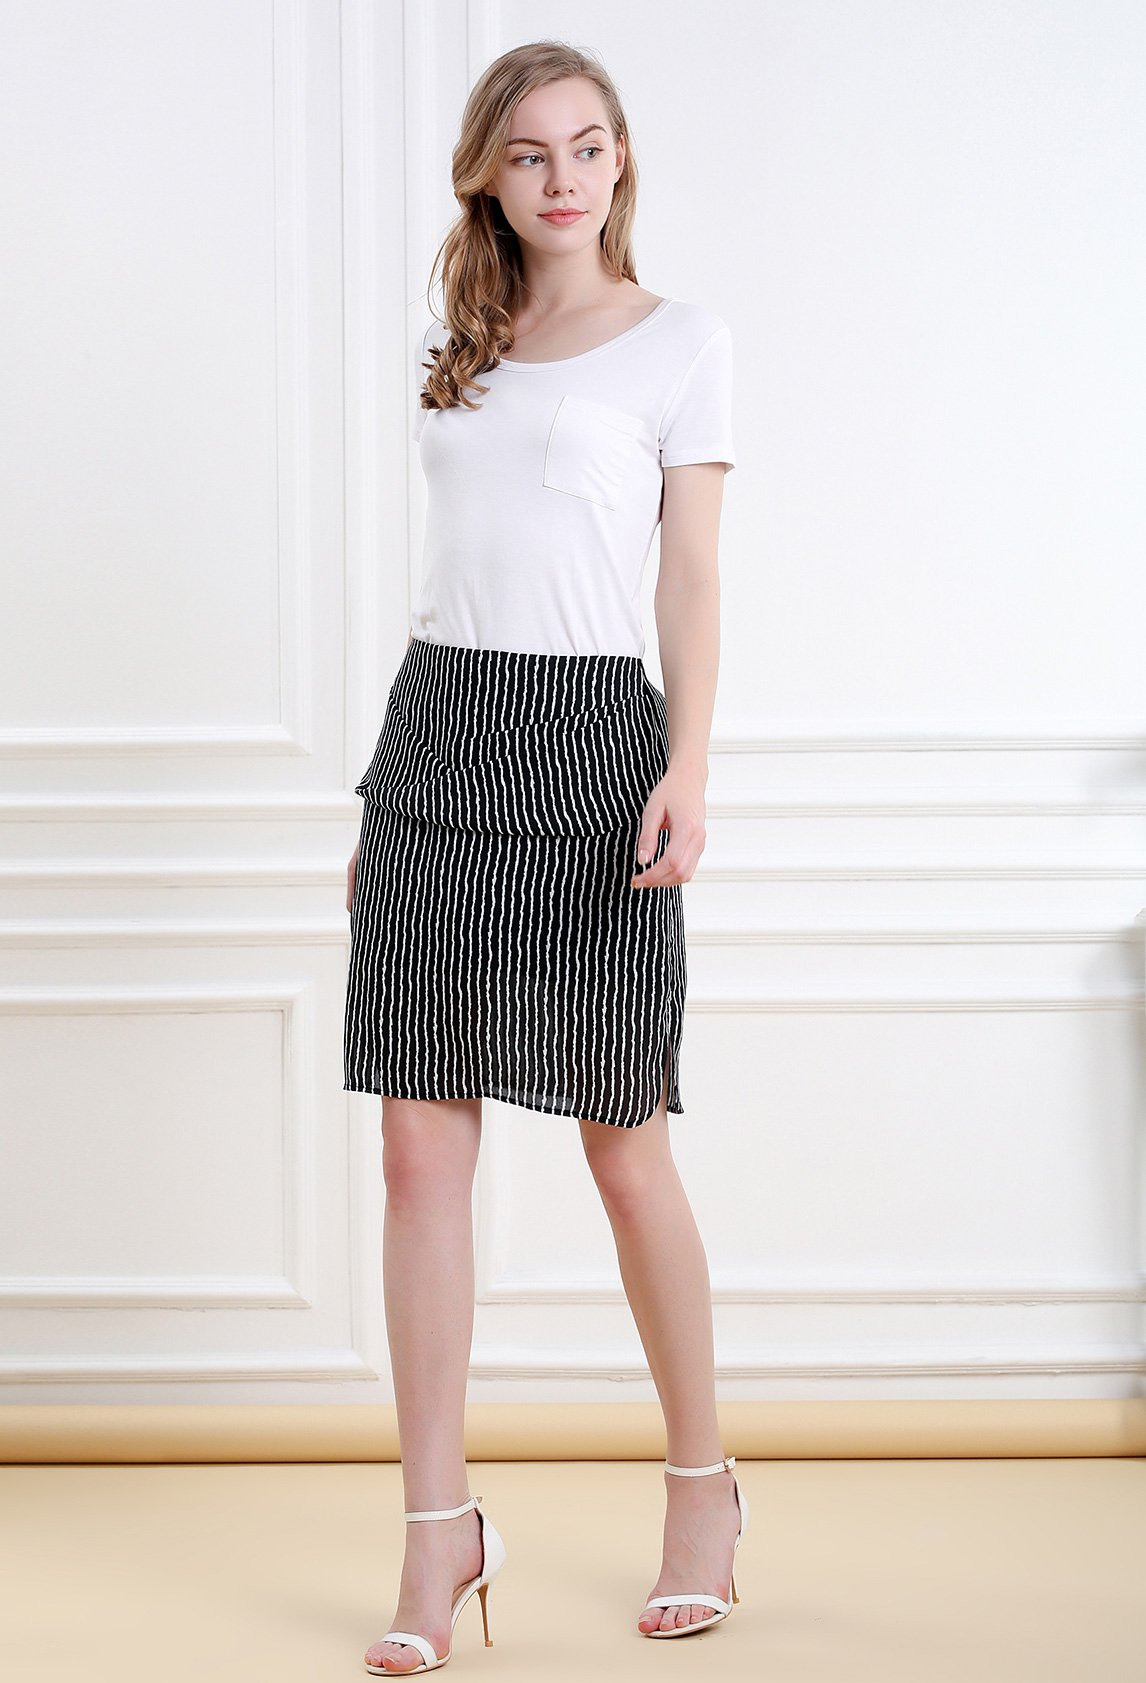 Women Striped Split Mini Skirt Crossed Front Casual A-line Skirt with Zipper XL by Vero Viva (Image #4)